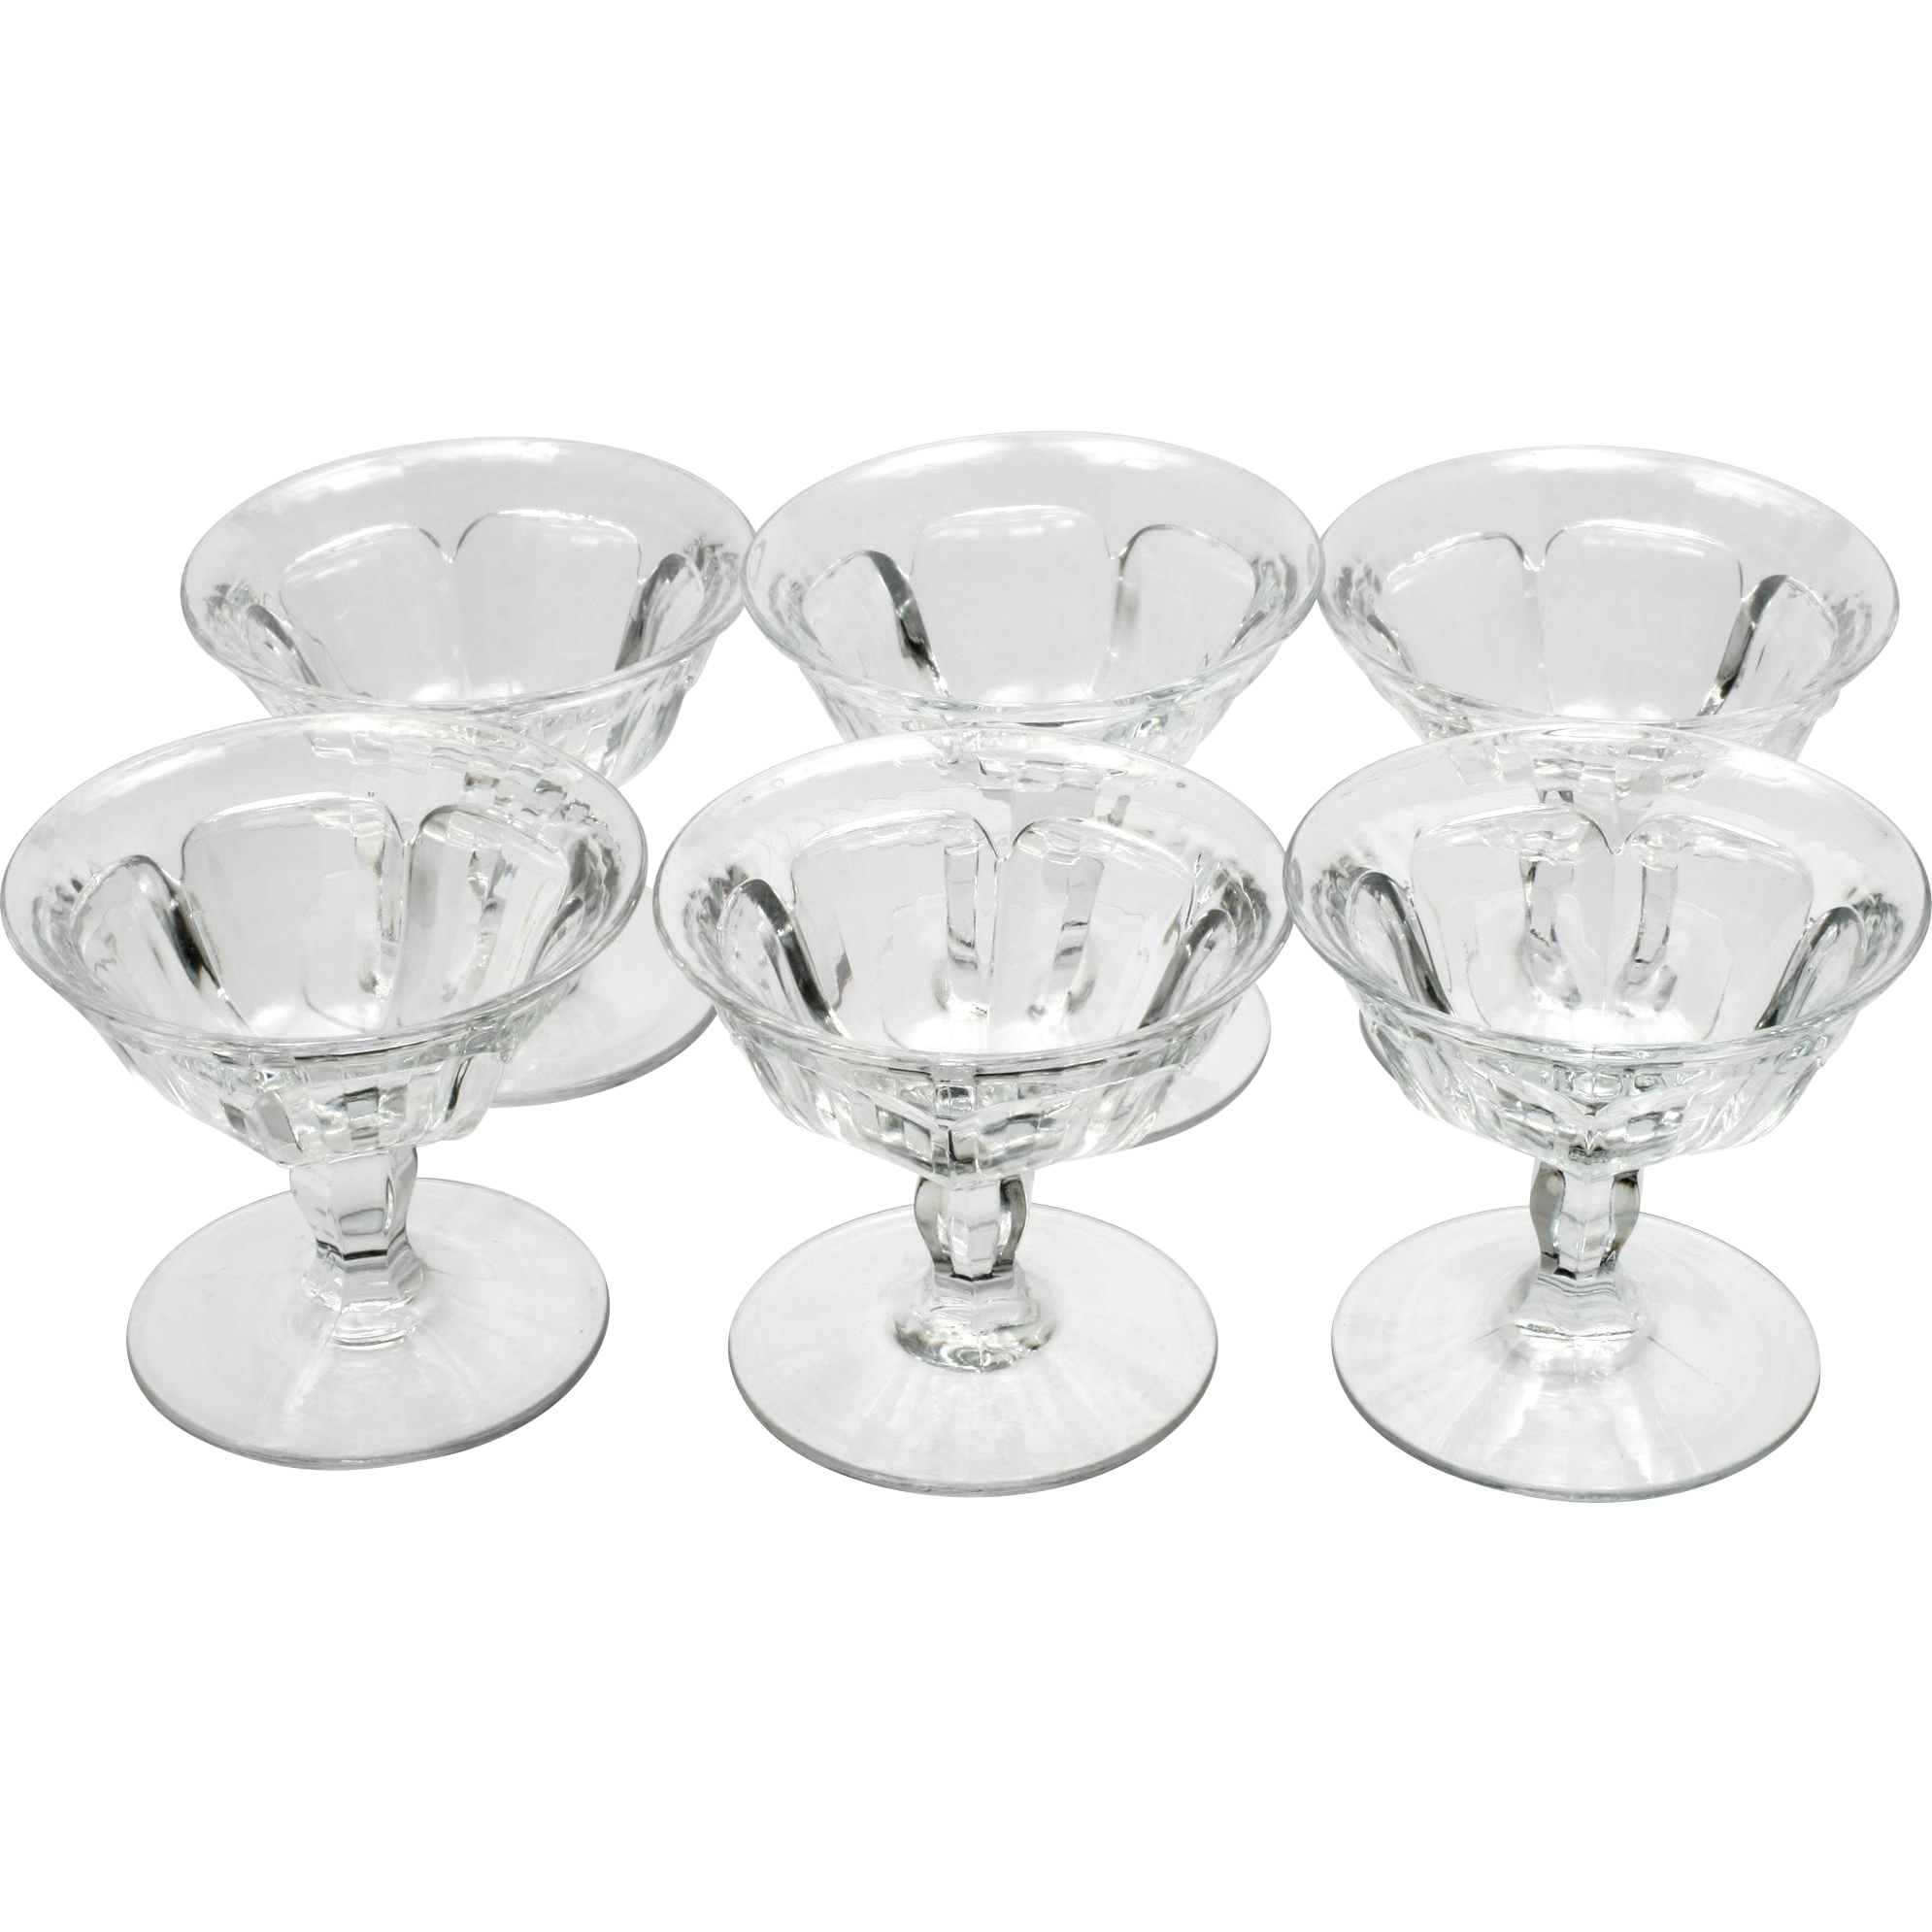 Heisey Colonial Optic Sherbet Glasses Vintage Crystal Stem 359 Set of 6 Antique Crystal